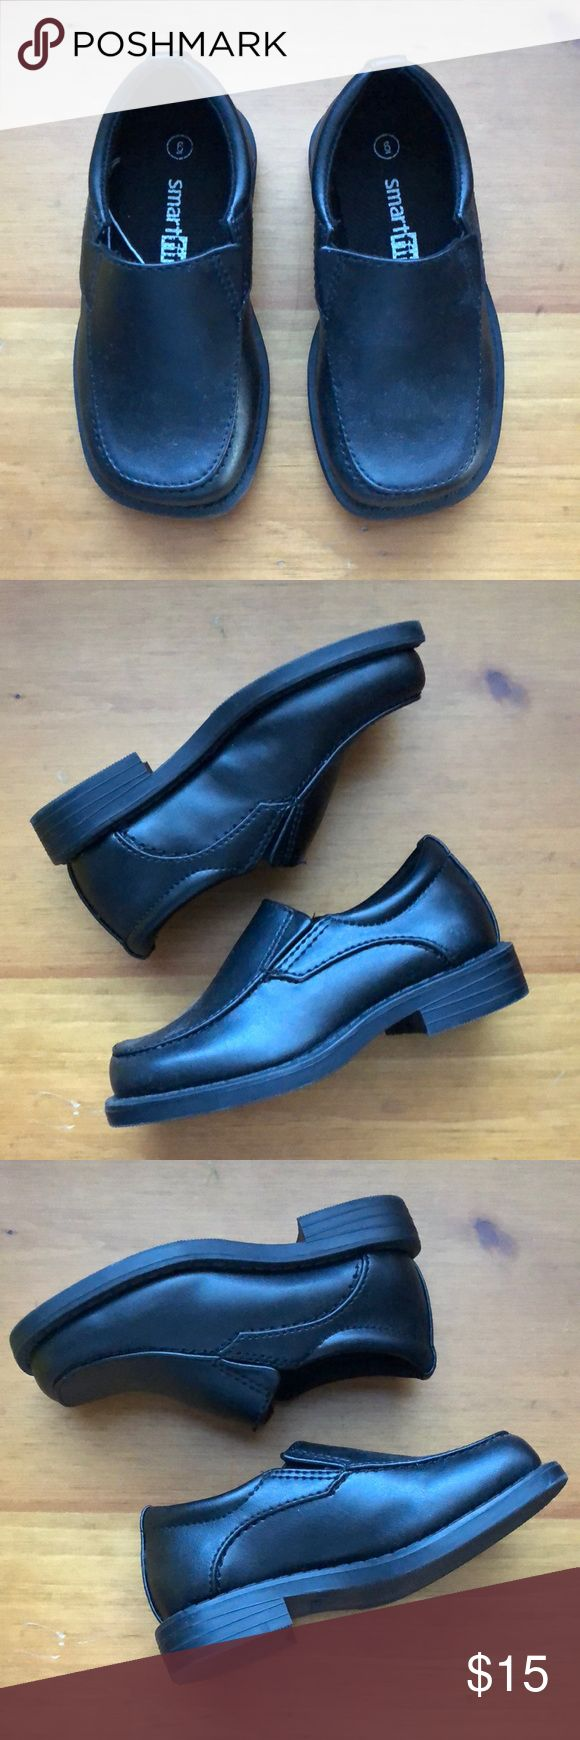 🔹SMARTFIT🔹 toddler dress shoes Black dress shoes from SmartFit, toddler boys size 6. Worn once to a wedding — like new condition. SmartFit Shoes Dress Shoes